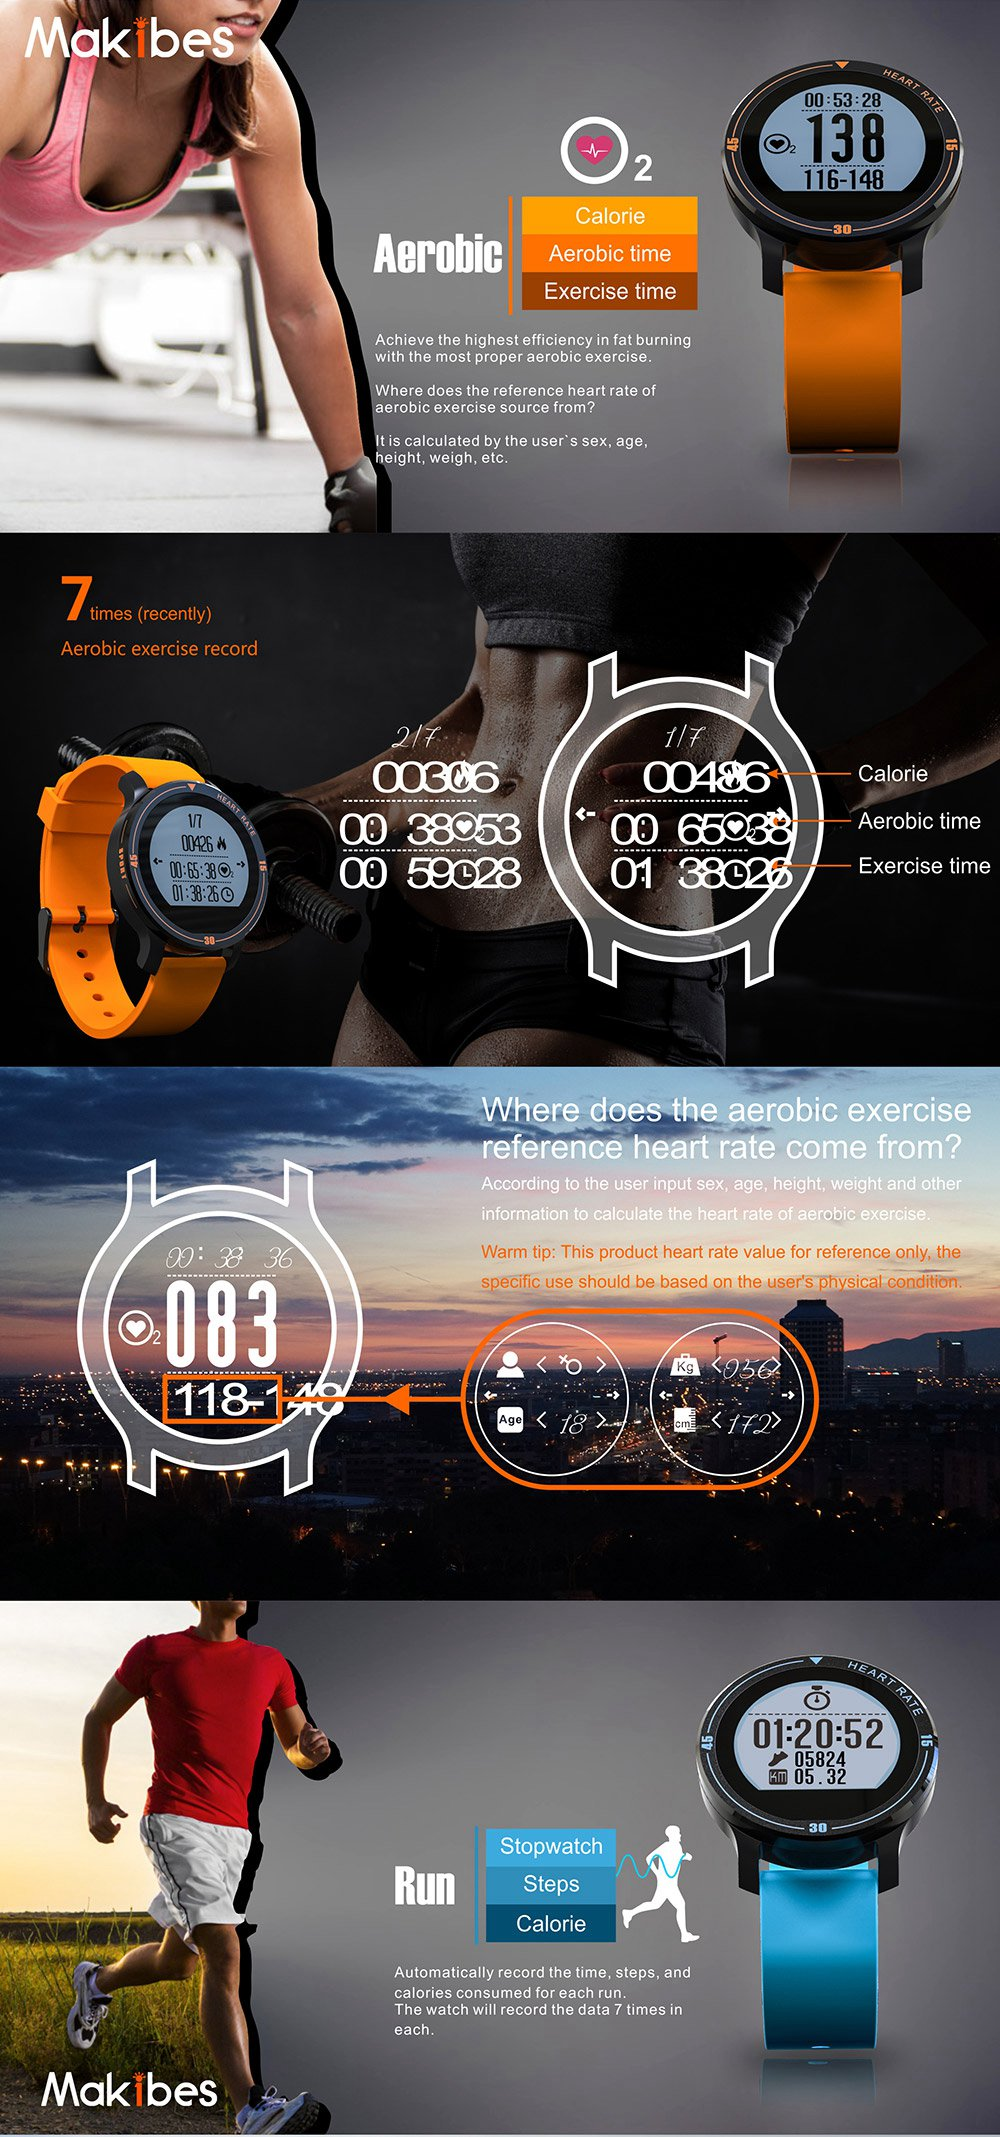 MAKIBES AEROBIC A1 SMART SPORTS WATCH BLUETOOTH DYNAMIC HEART RATE MONITOR SMARTWATCH S200 231407 17